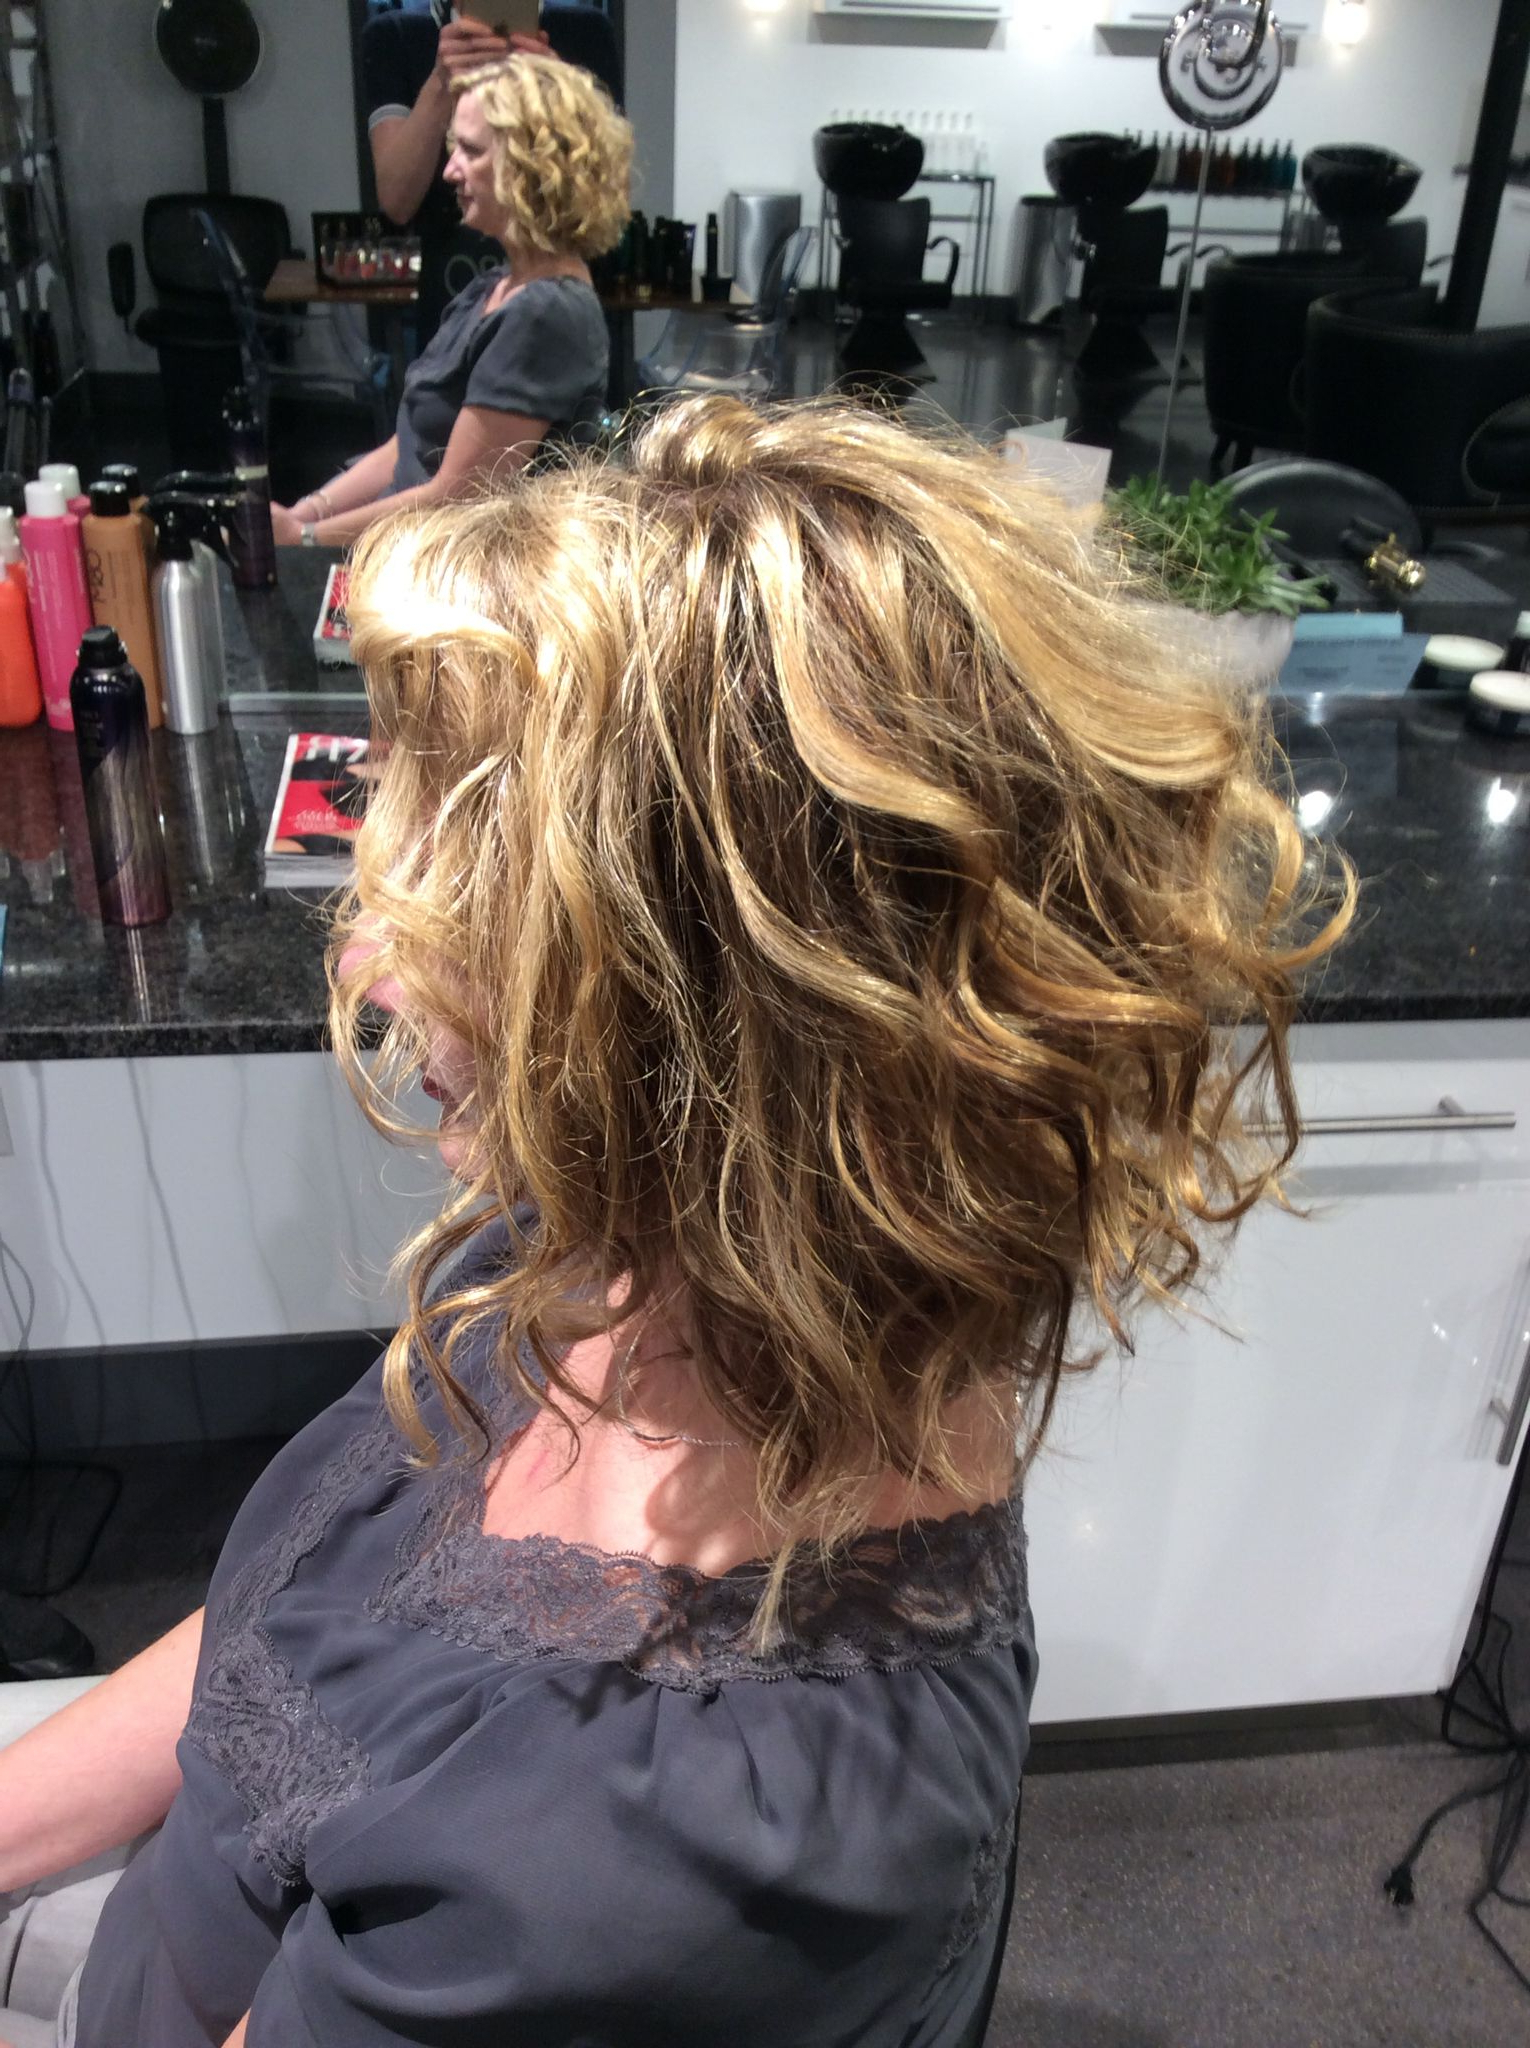 Blonde Highlights On Natural Curly Hair (View 16 of 20)